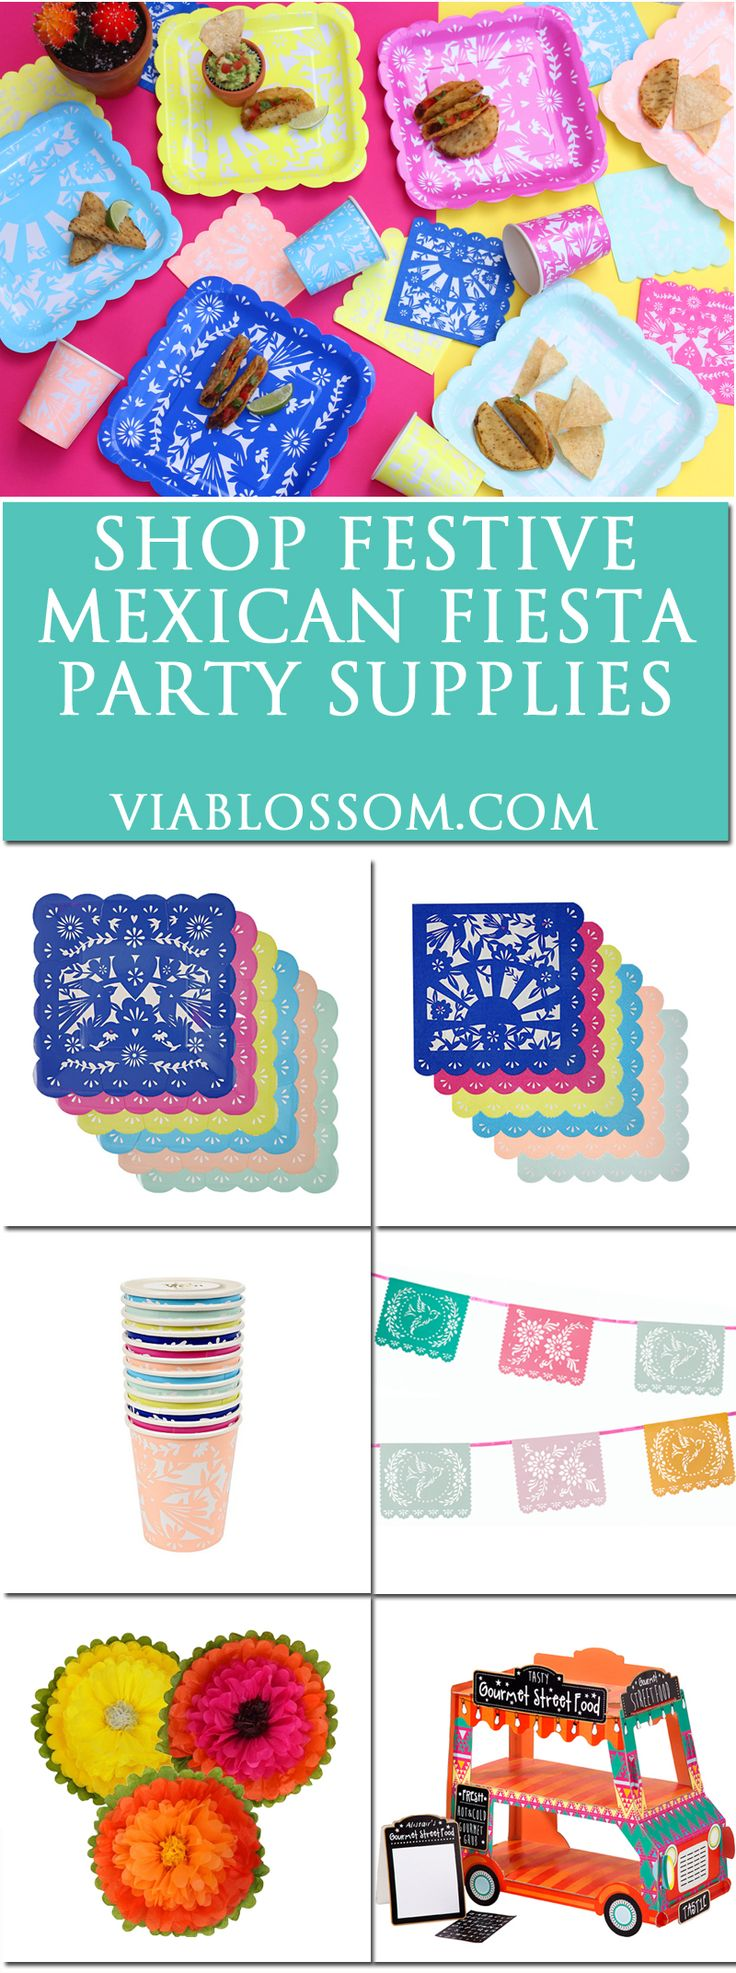 Mexican fiesta party decorating ideas hosting guide - Shop Our Must Have Fiesta Party Supplies And Decorations For The Coolest Party Ever Festive